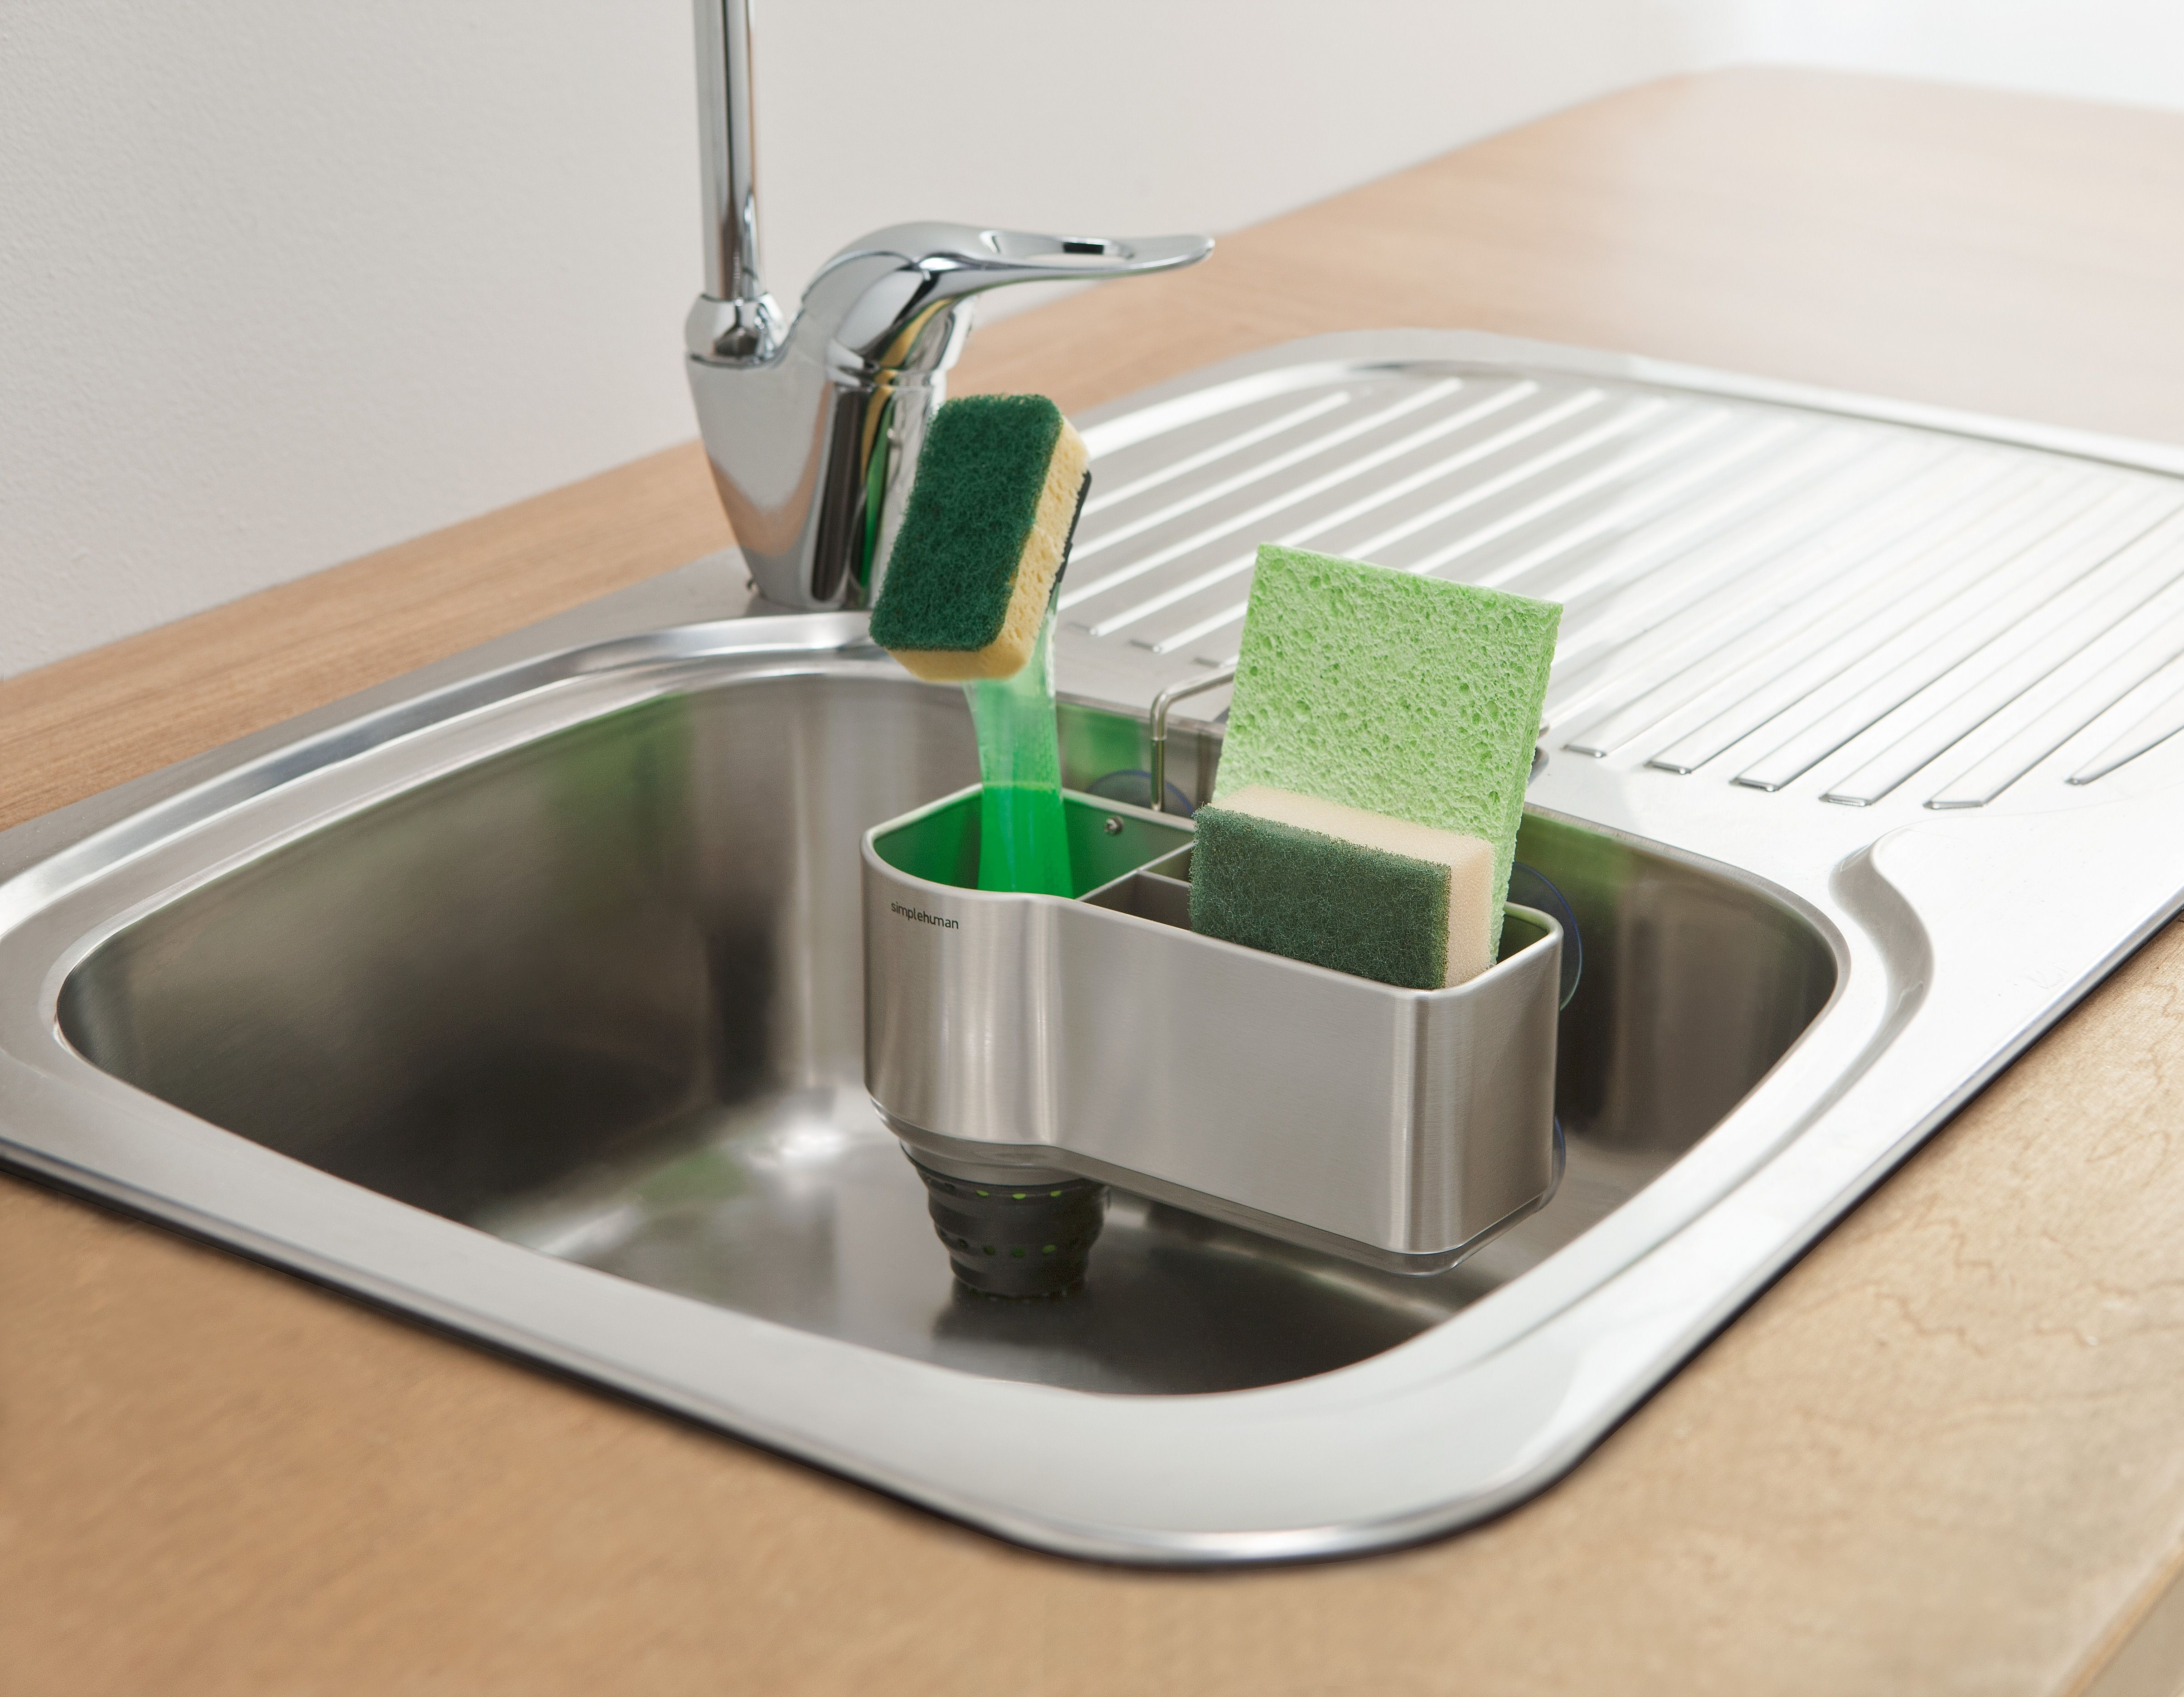 Charmant The Simplehuman Sink Caddy Is Available At Howards Storage World. $36.95